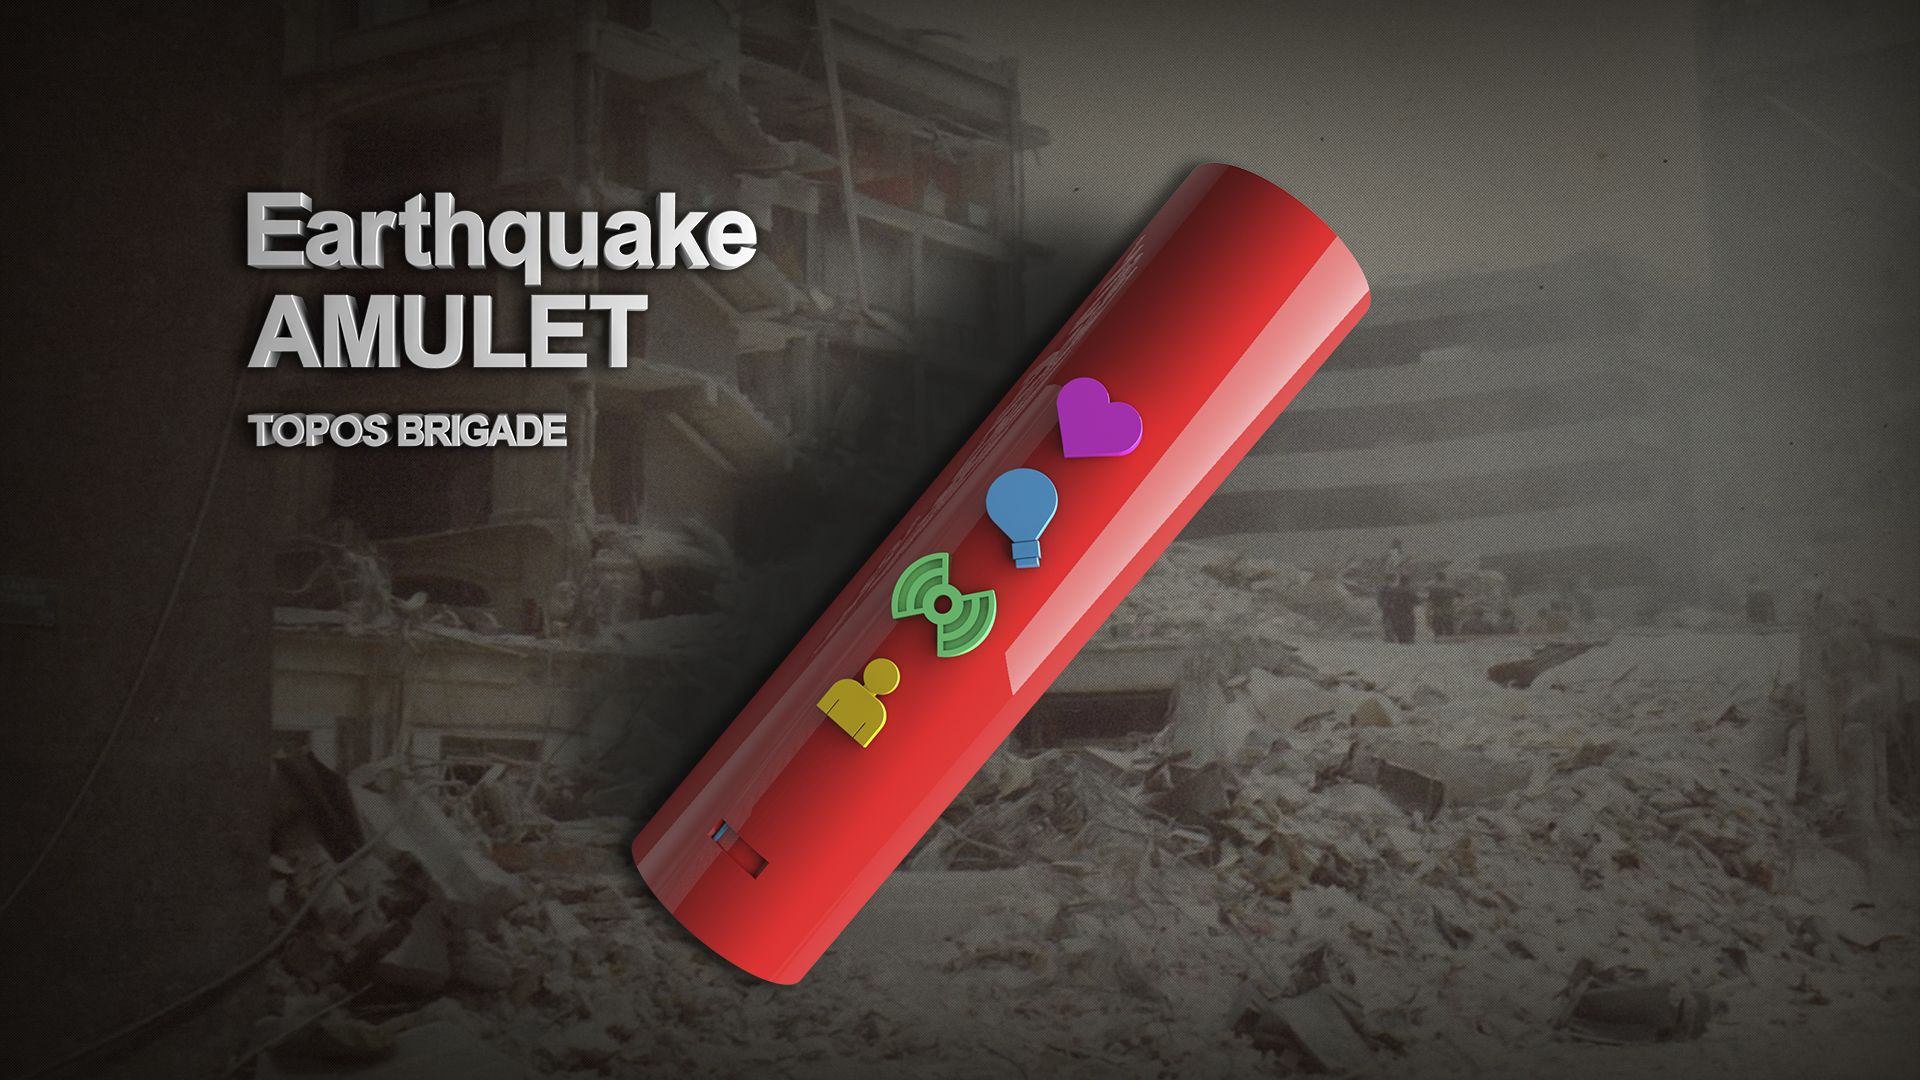 Earthquake rescue device